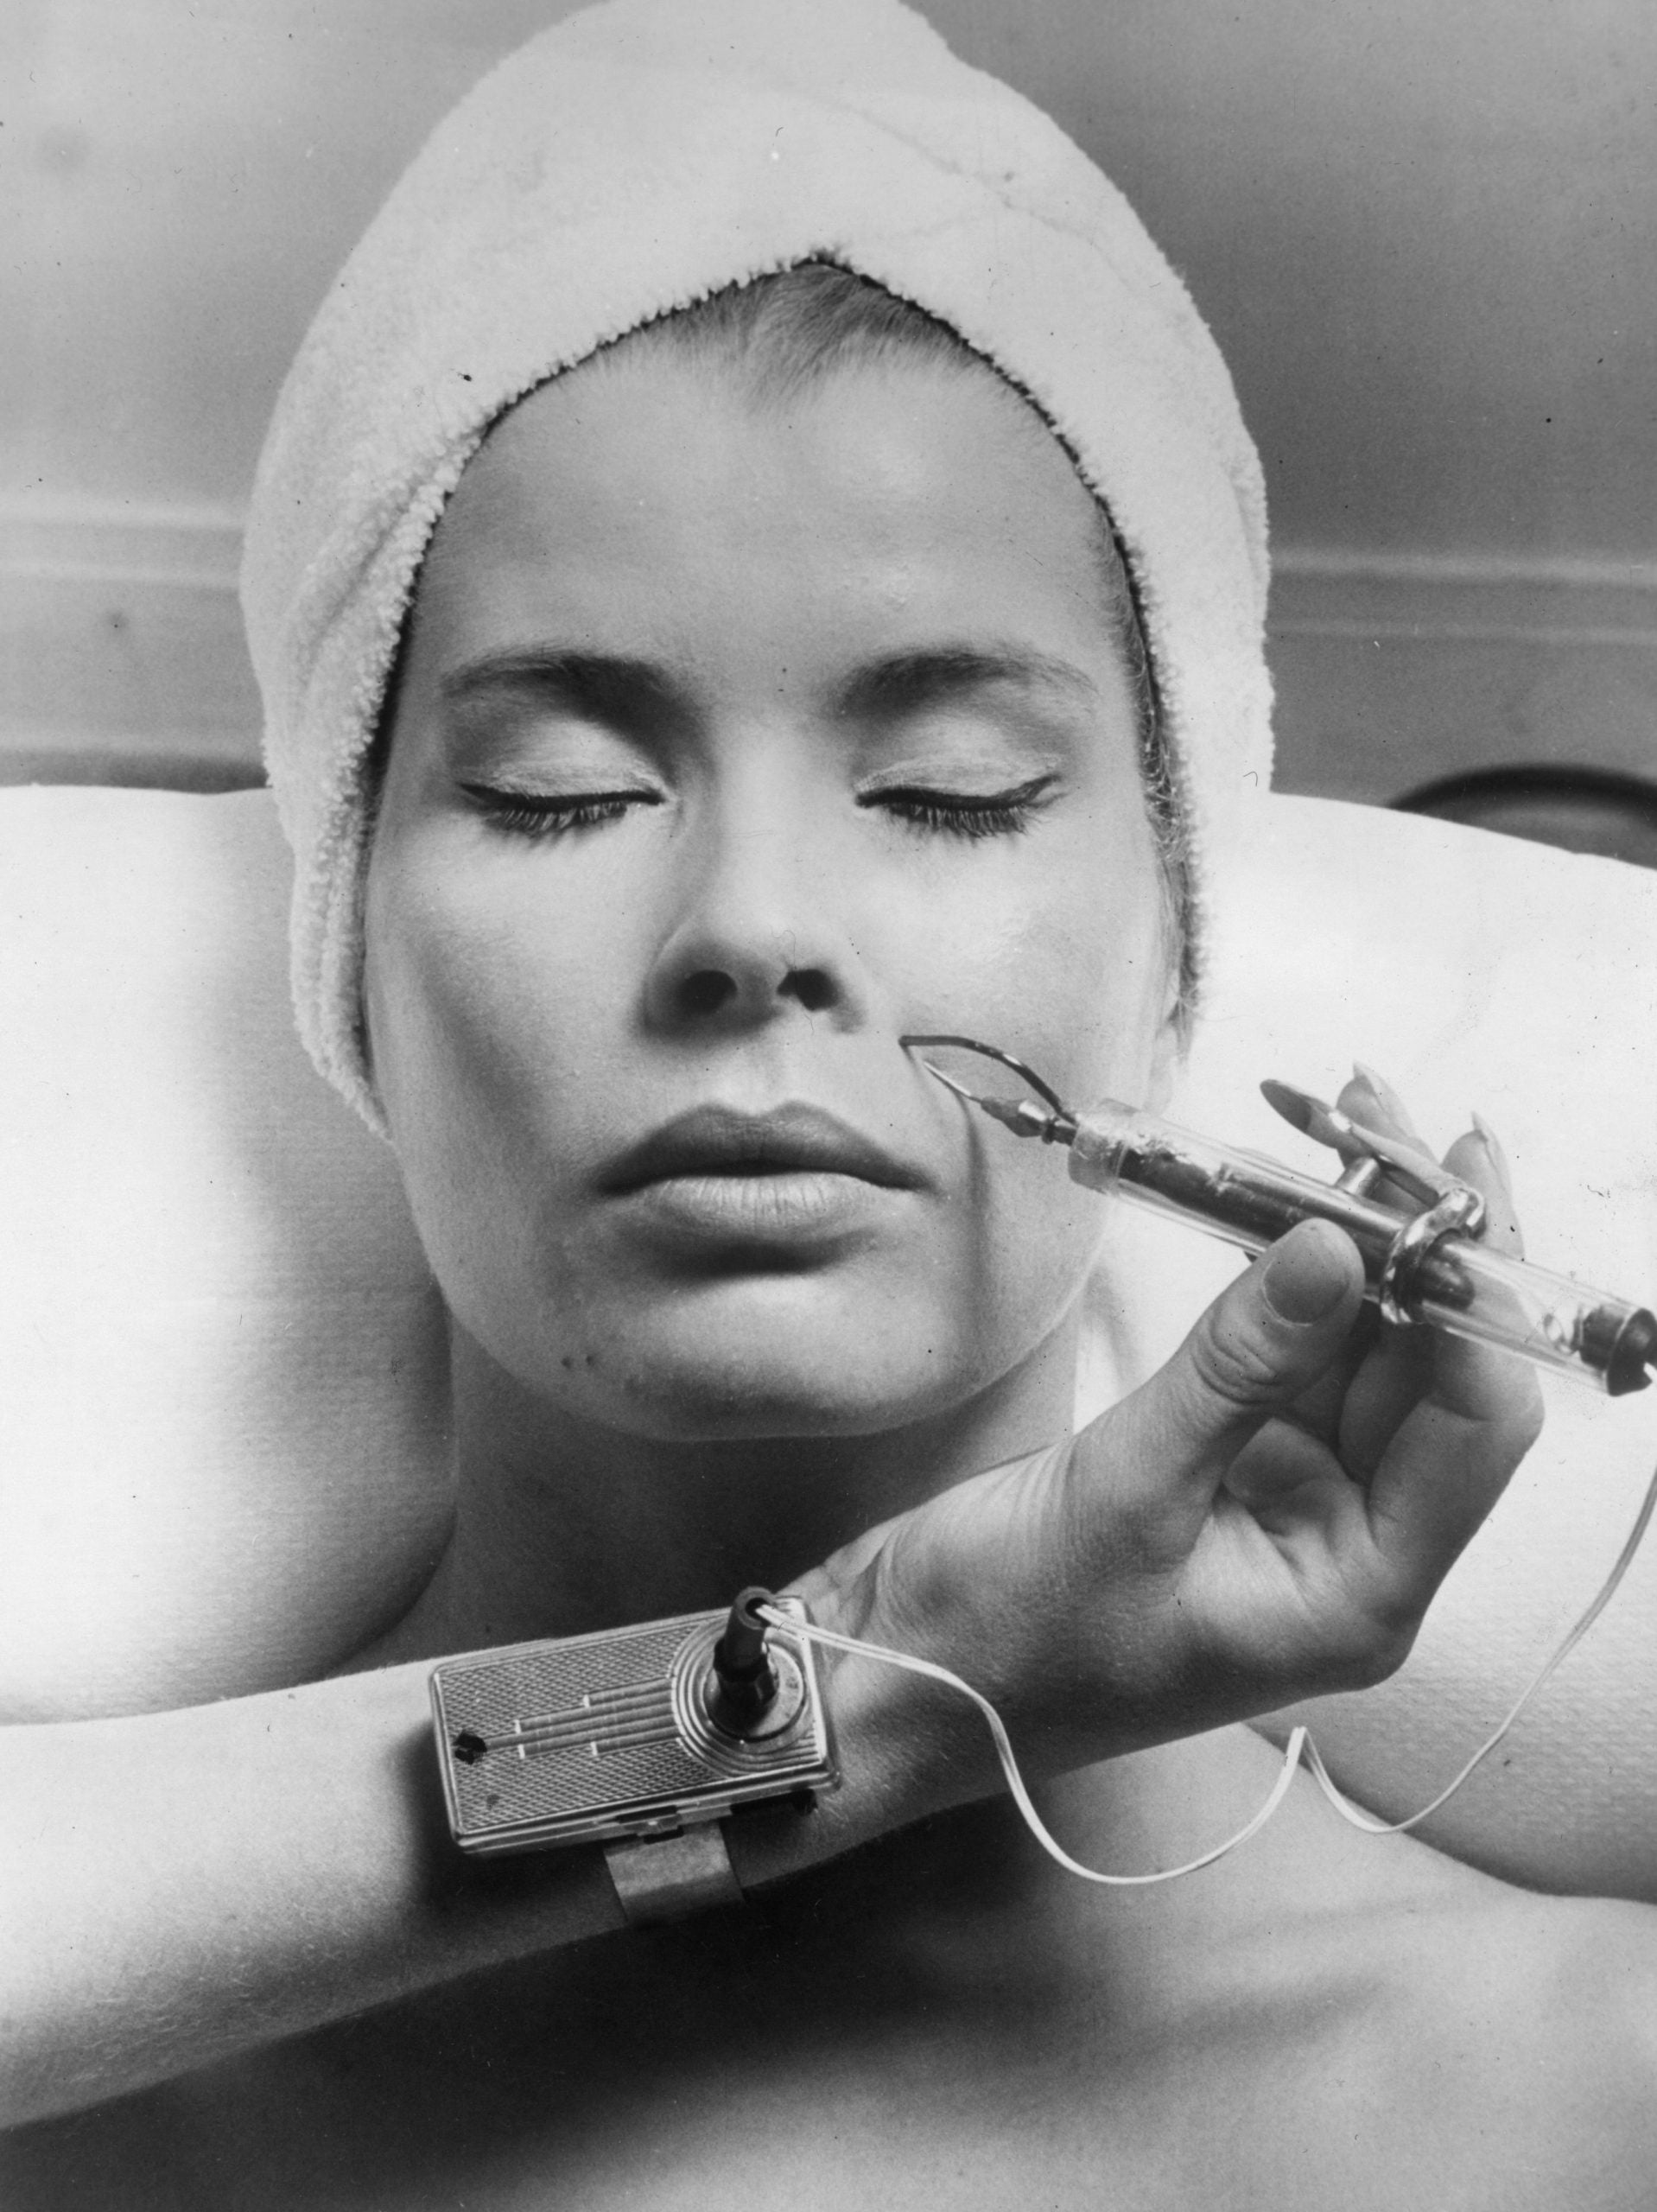 The rise in cosmetic procedures troubles me – and it shouldn't be anti-feminist to say so